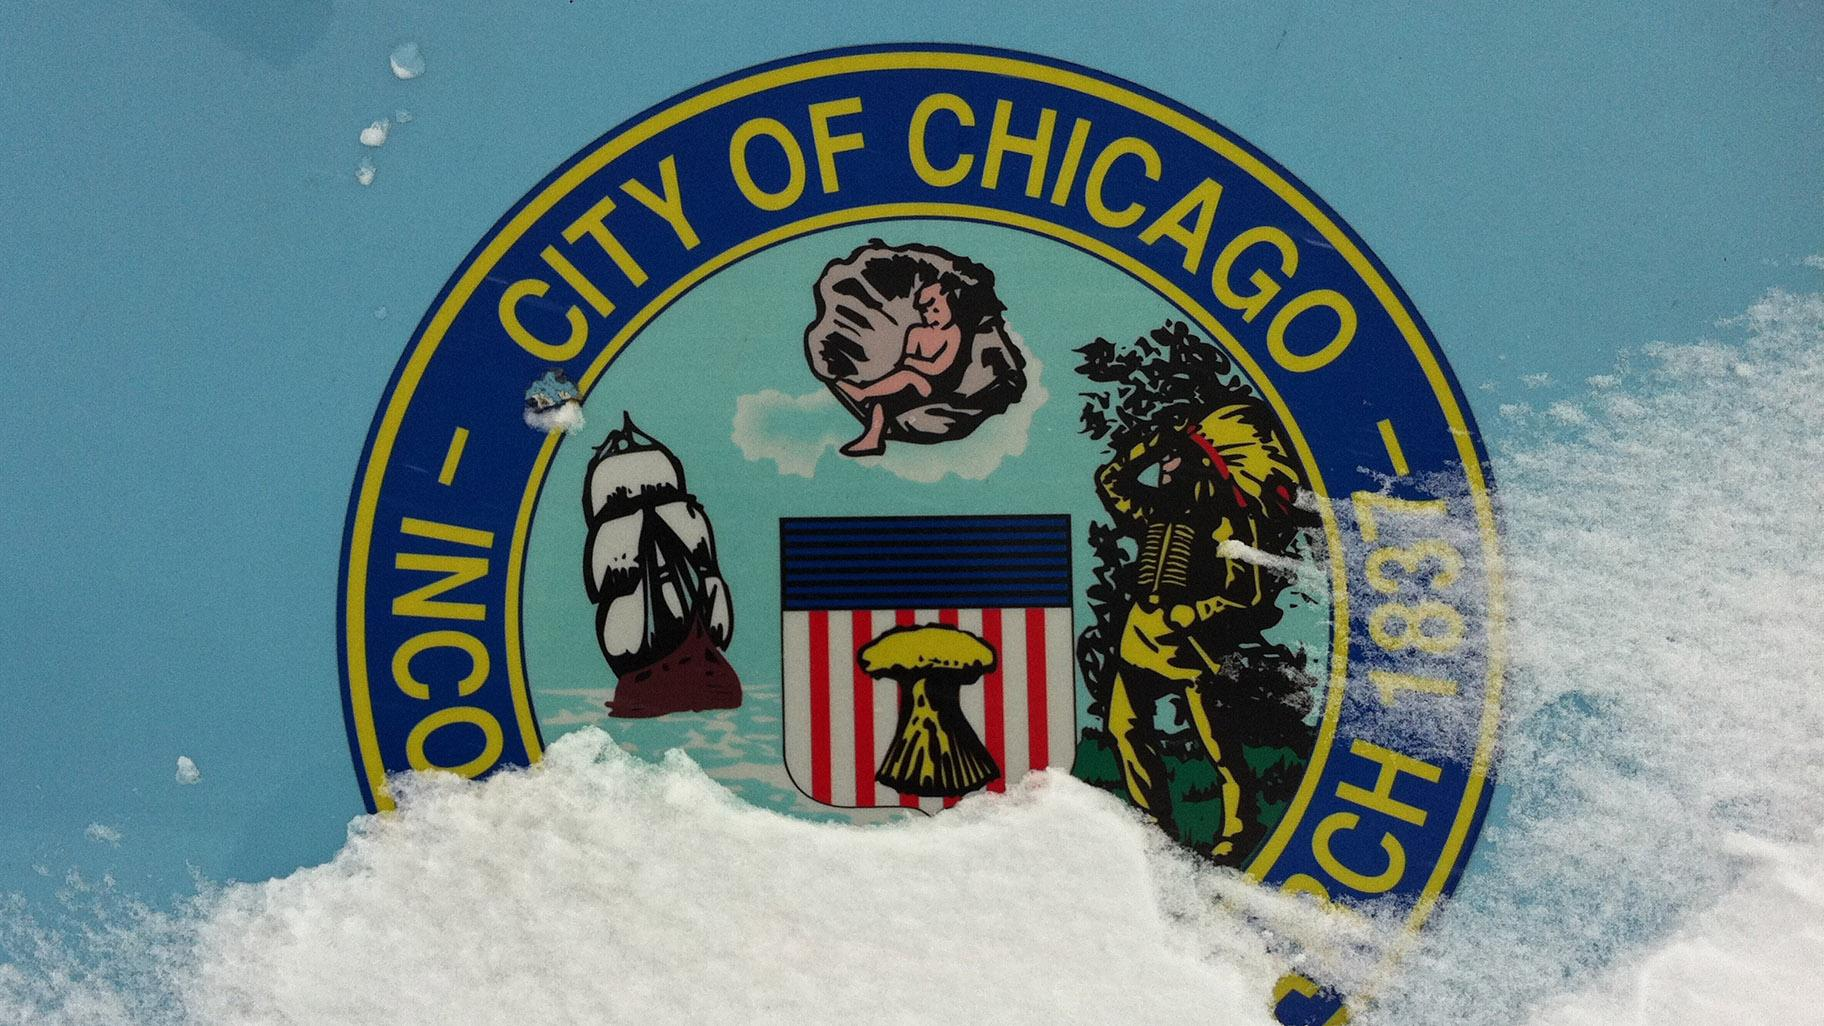 This file photo shows a City of Chicago seal on the side of a salt truck. (t3xt (talk) / Wikimedia Commons)